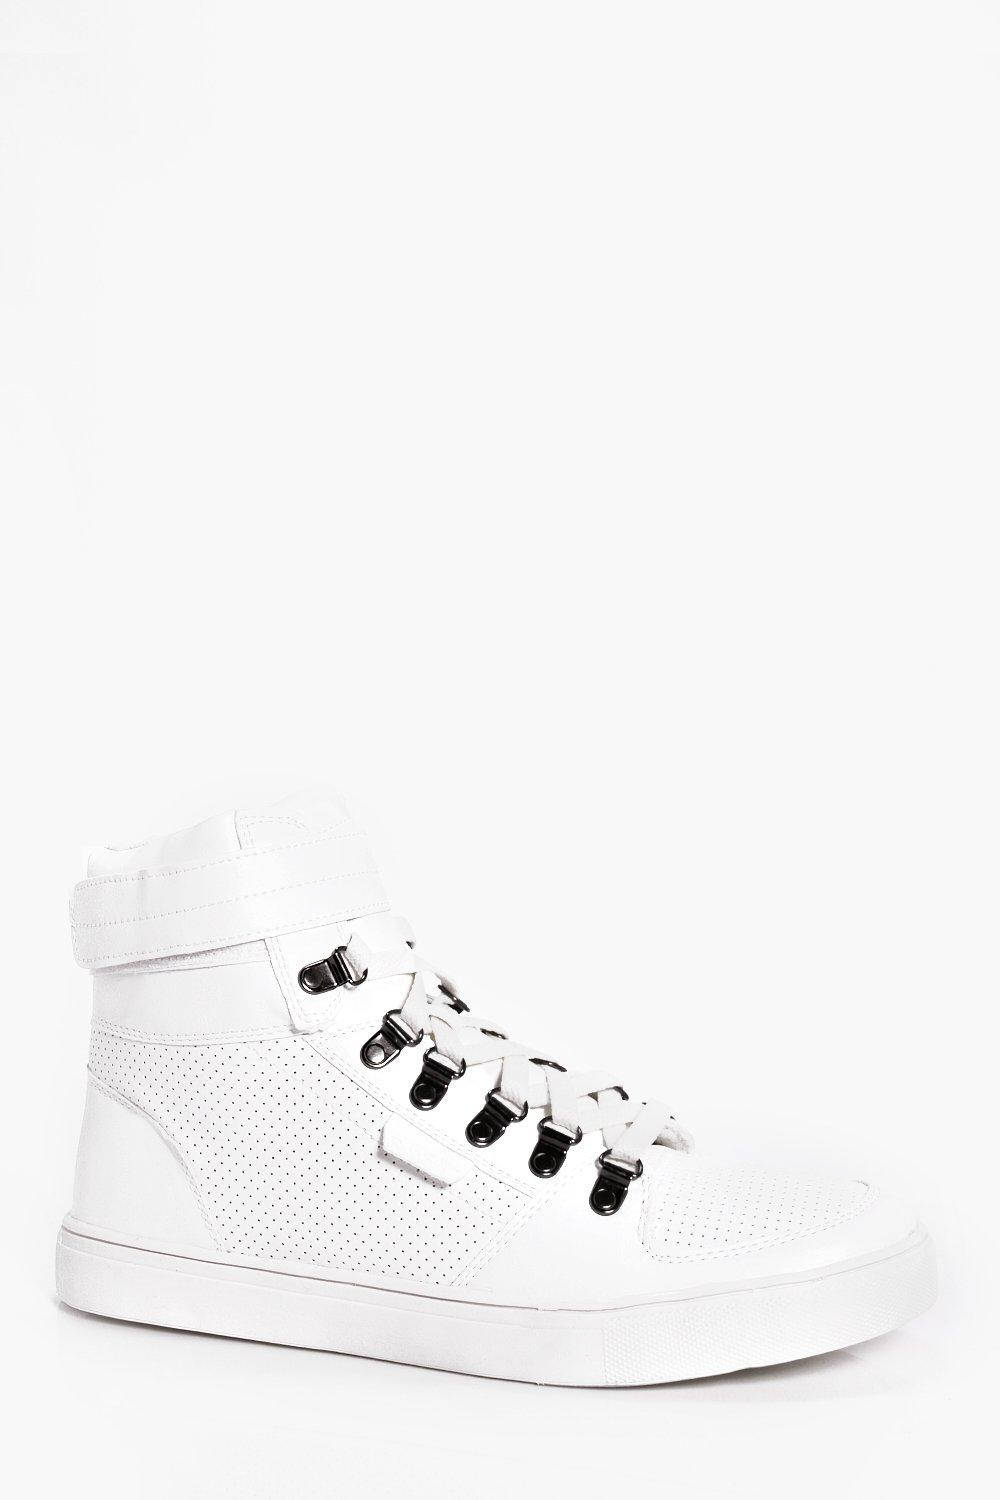 PU Hi Top With Velcro Fastening